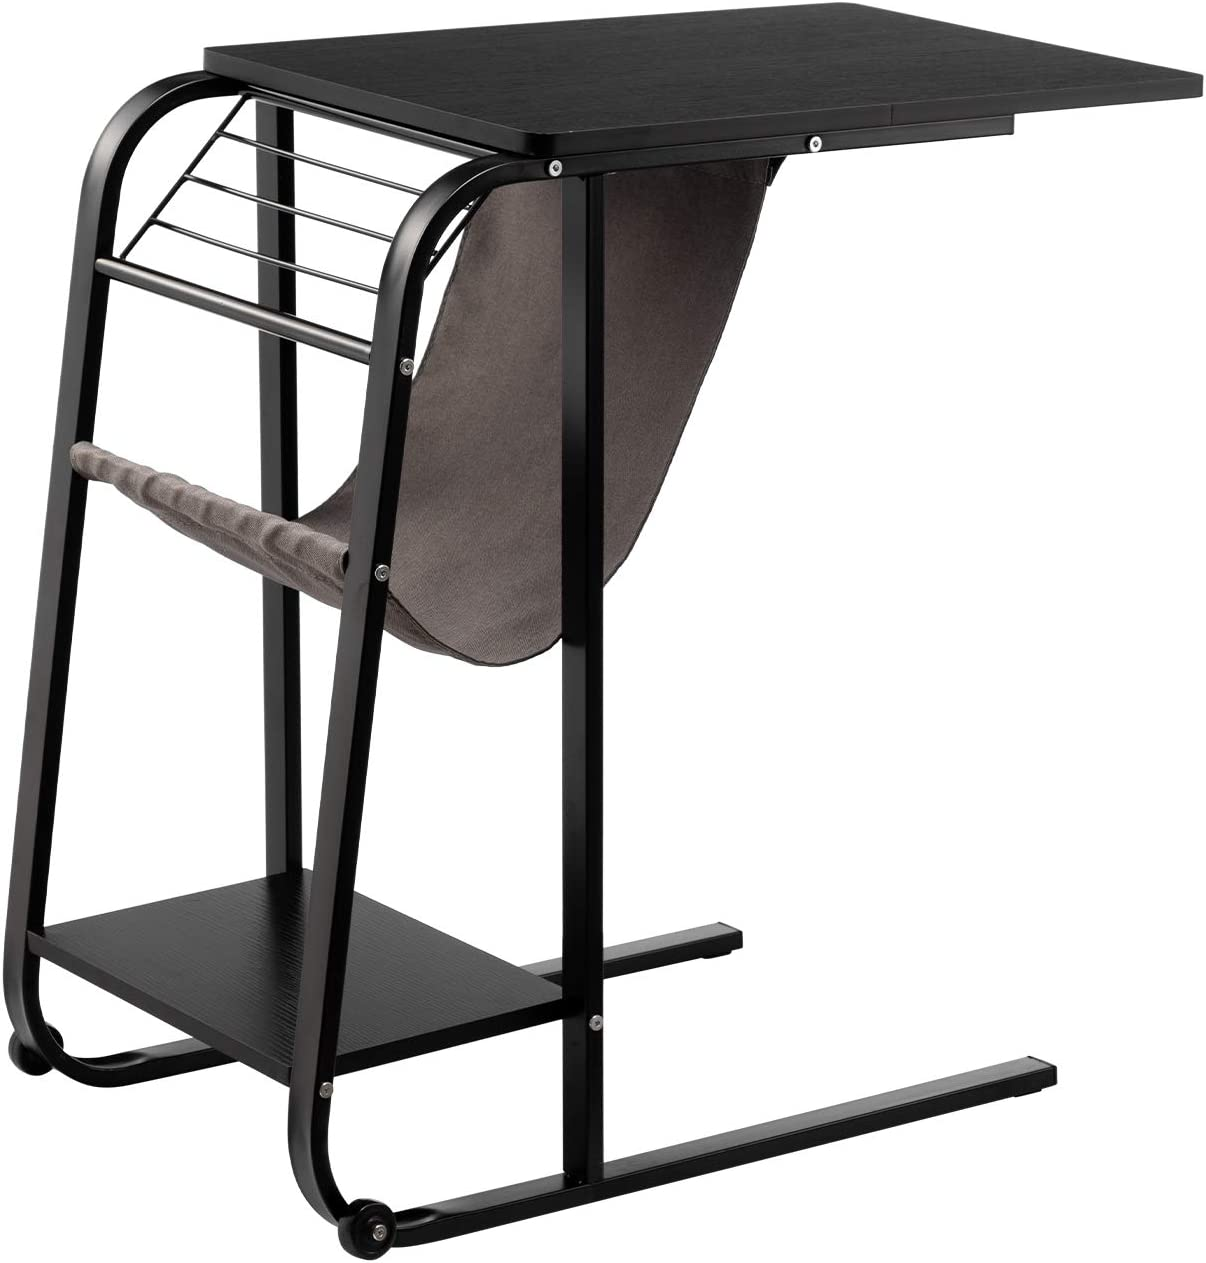 DOEWORKS Side Overbed Table, Black Laptop Desk with Storage, Mobile End Tble, Tary Side Magazine Table